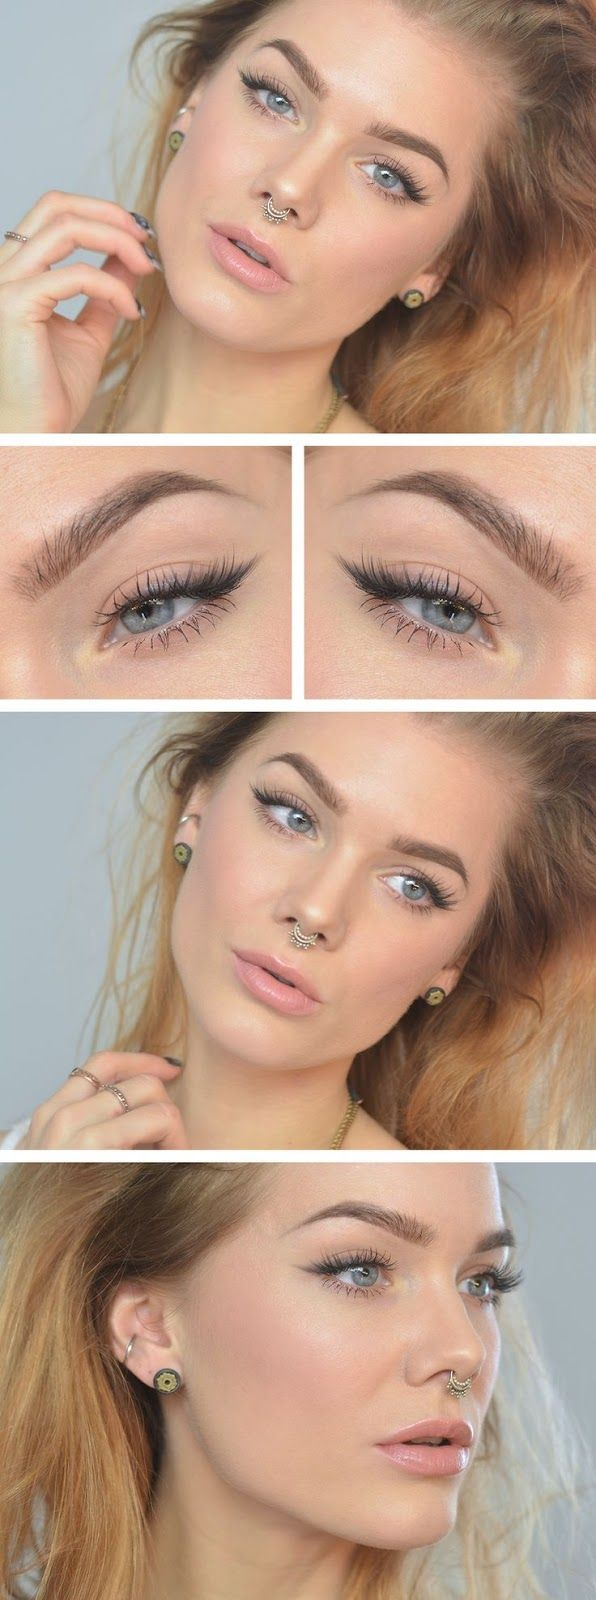 Best Beauty and Makeup Tutorial 2015